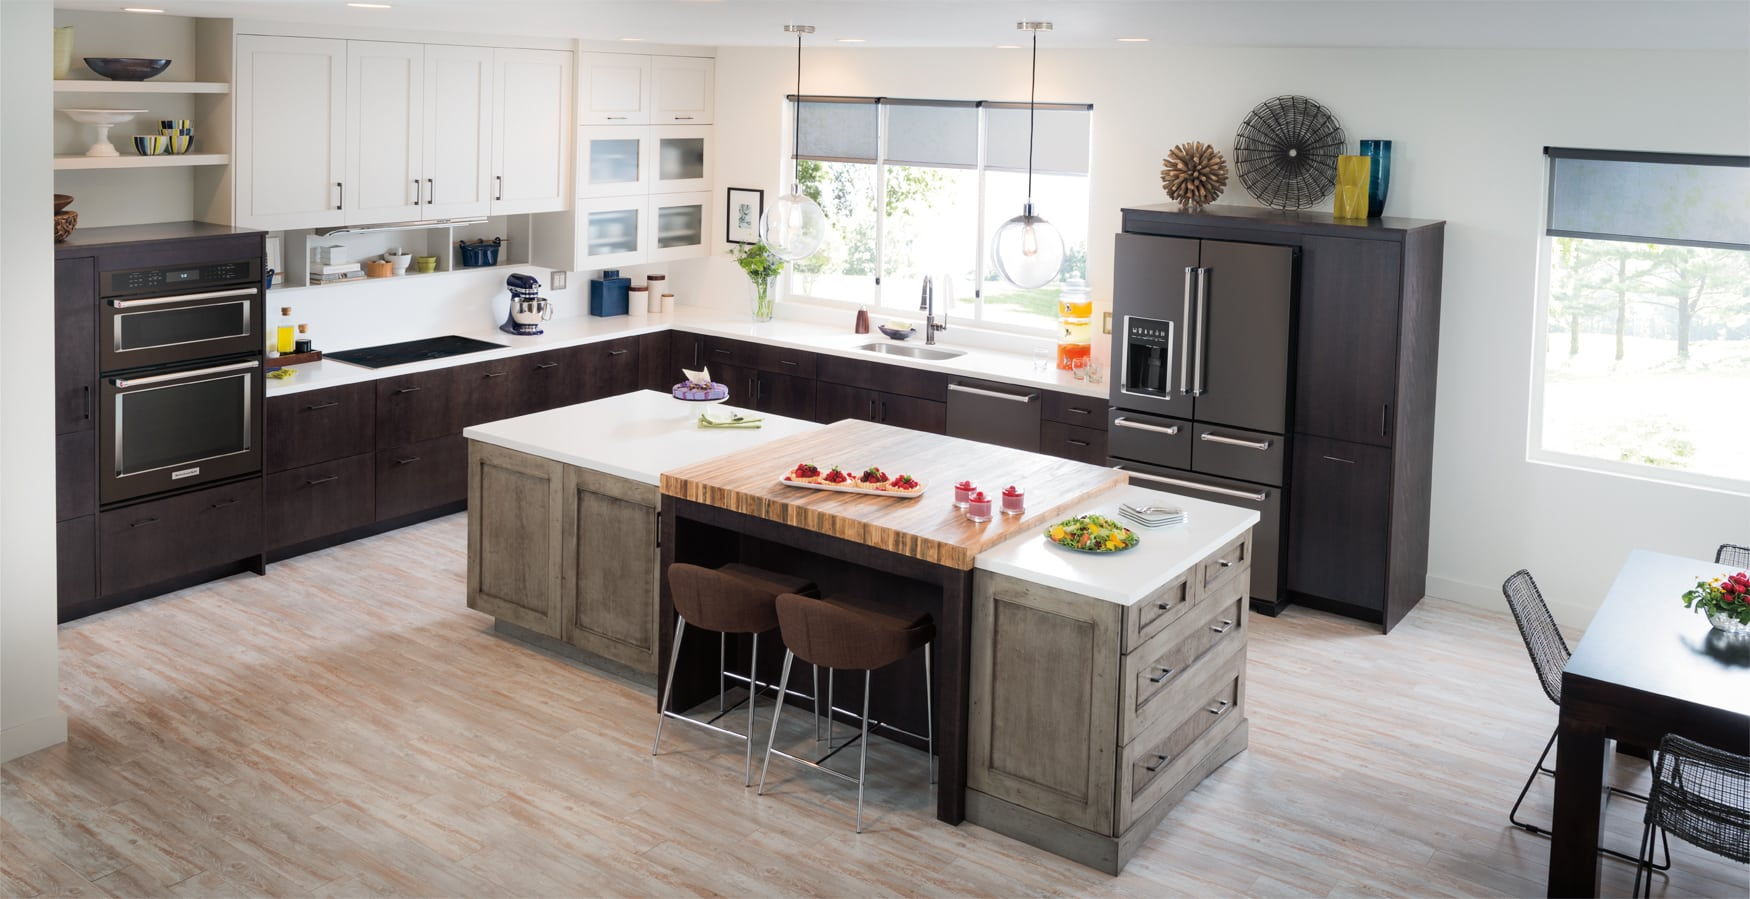 KitchenAid Products from @BestBuy Help Prep Your Kitchen for the Holidays #ad